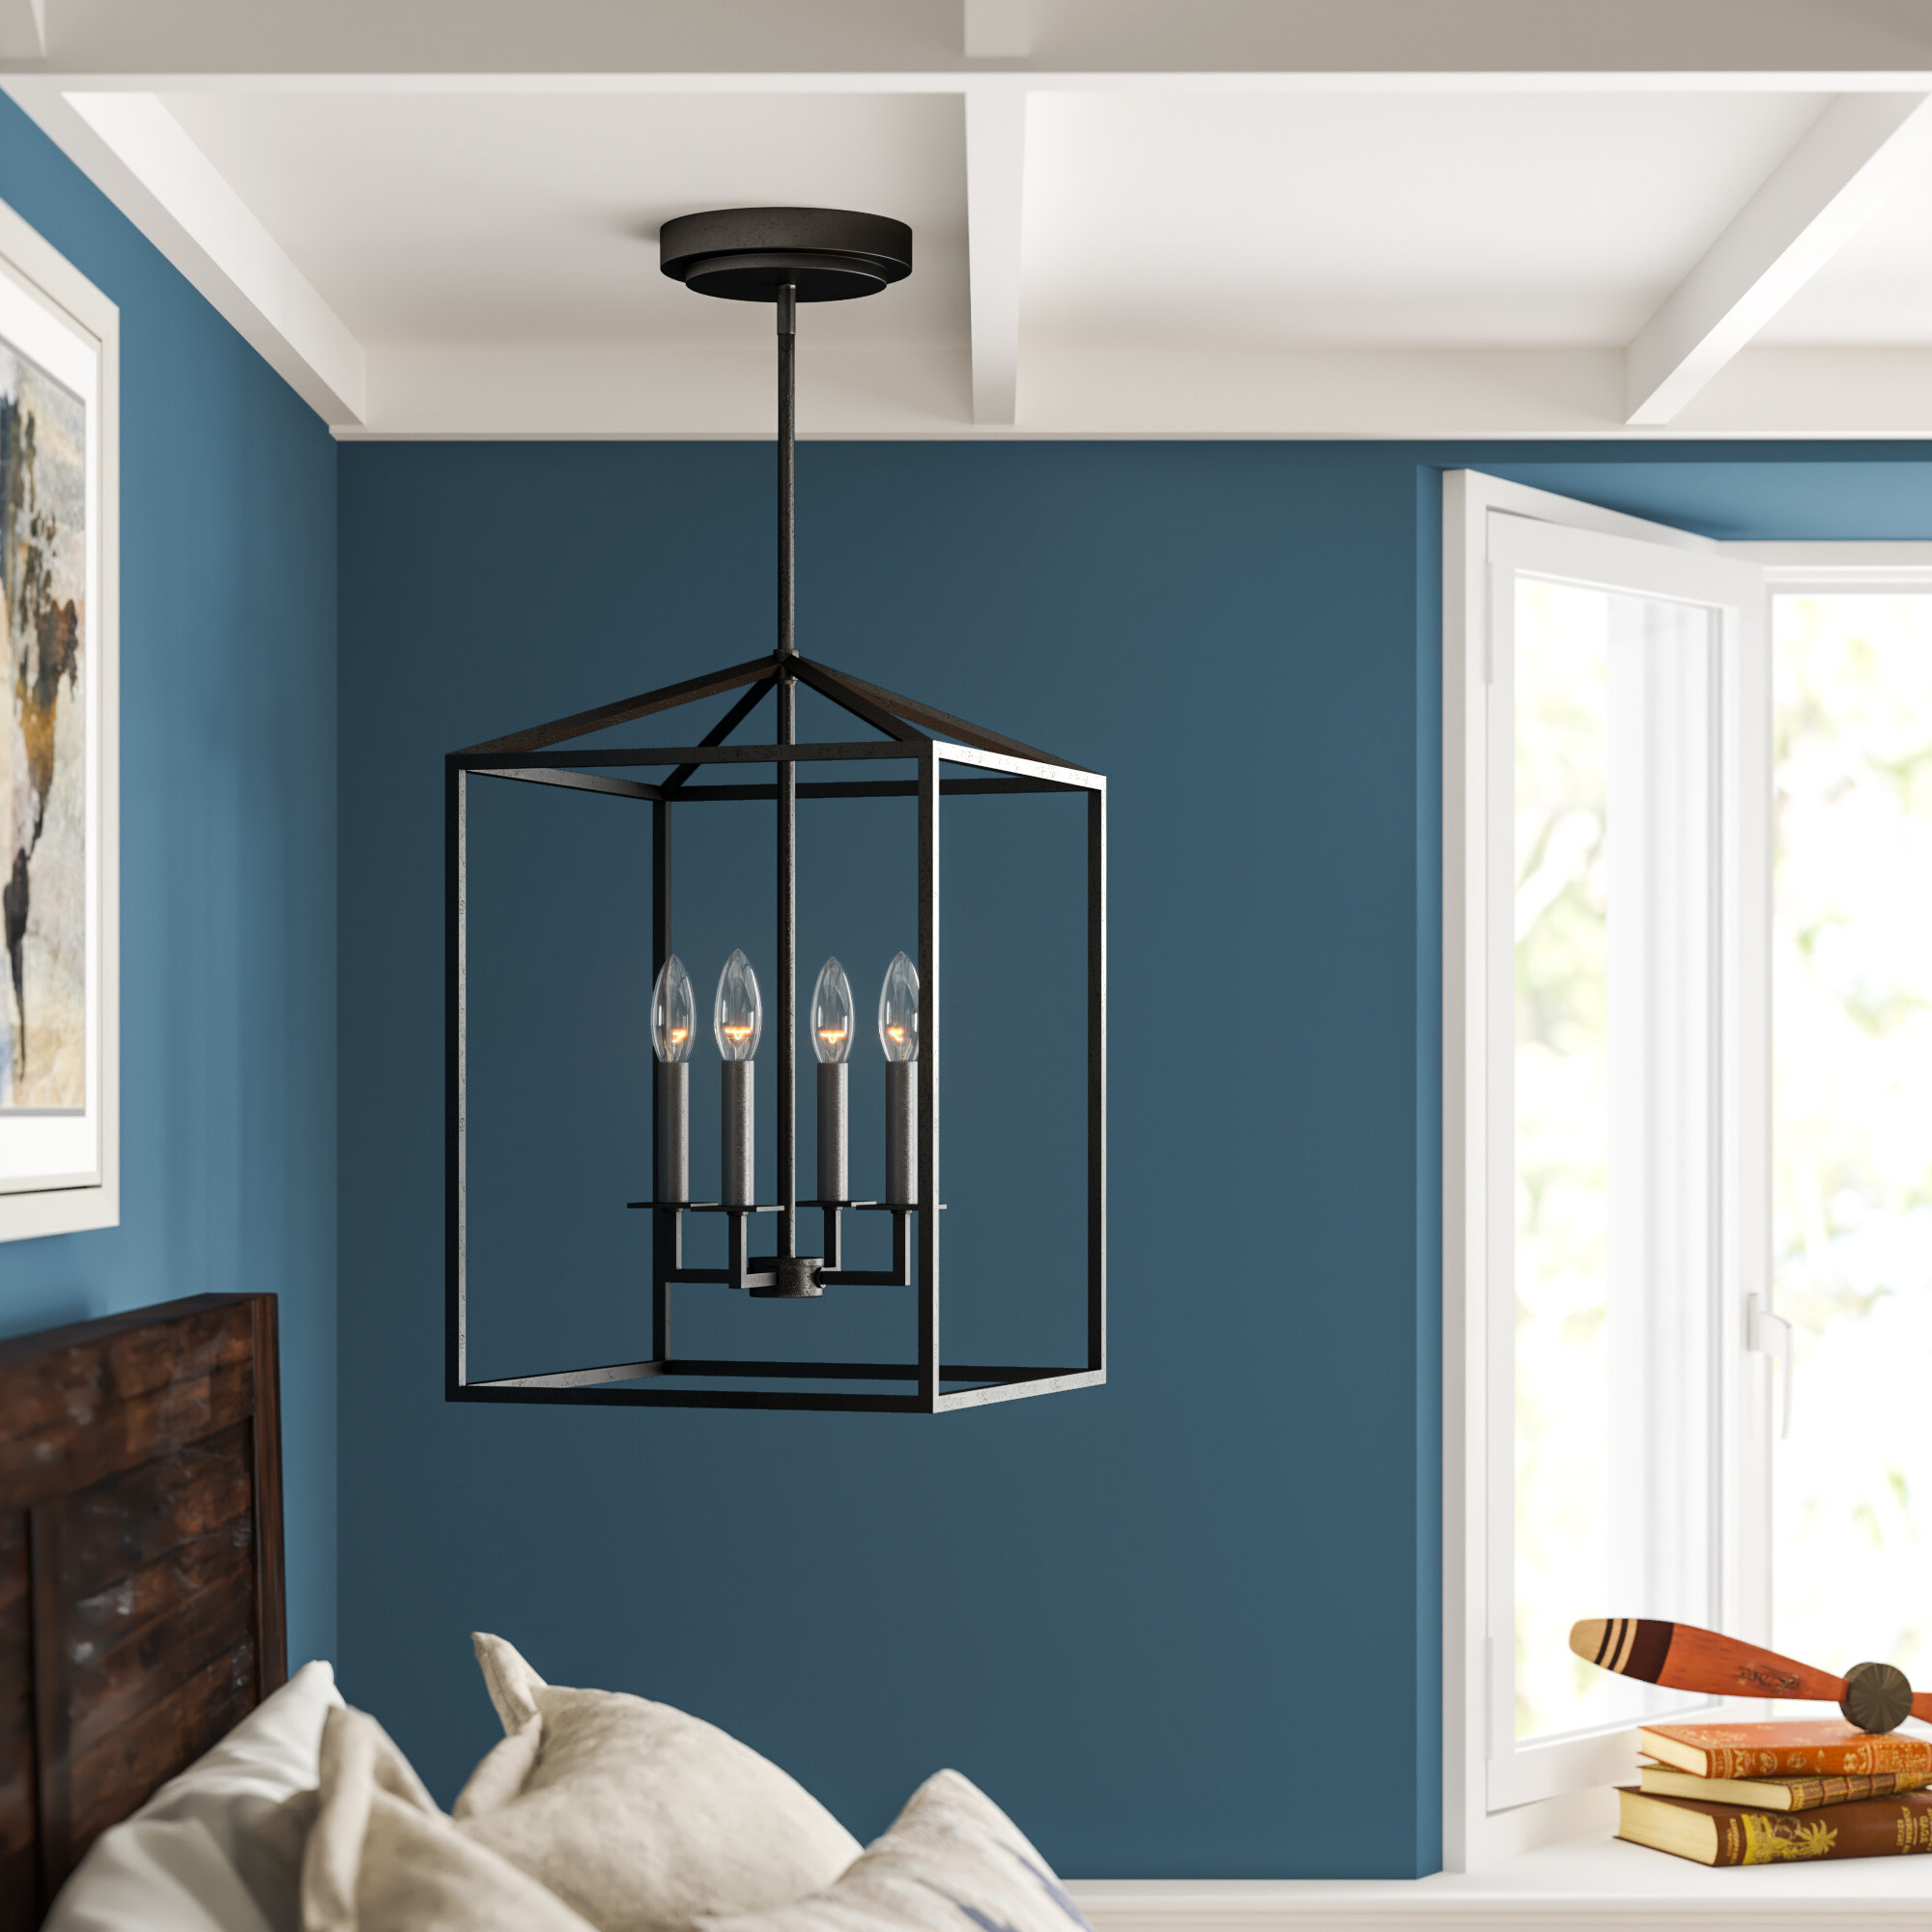 Odie 4 Light Lantern Square/rectangle Pendant With Current 4 Light Lantern Square / Rectangle Pendants (View 15 of 25)